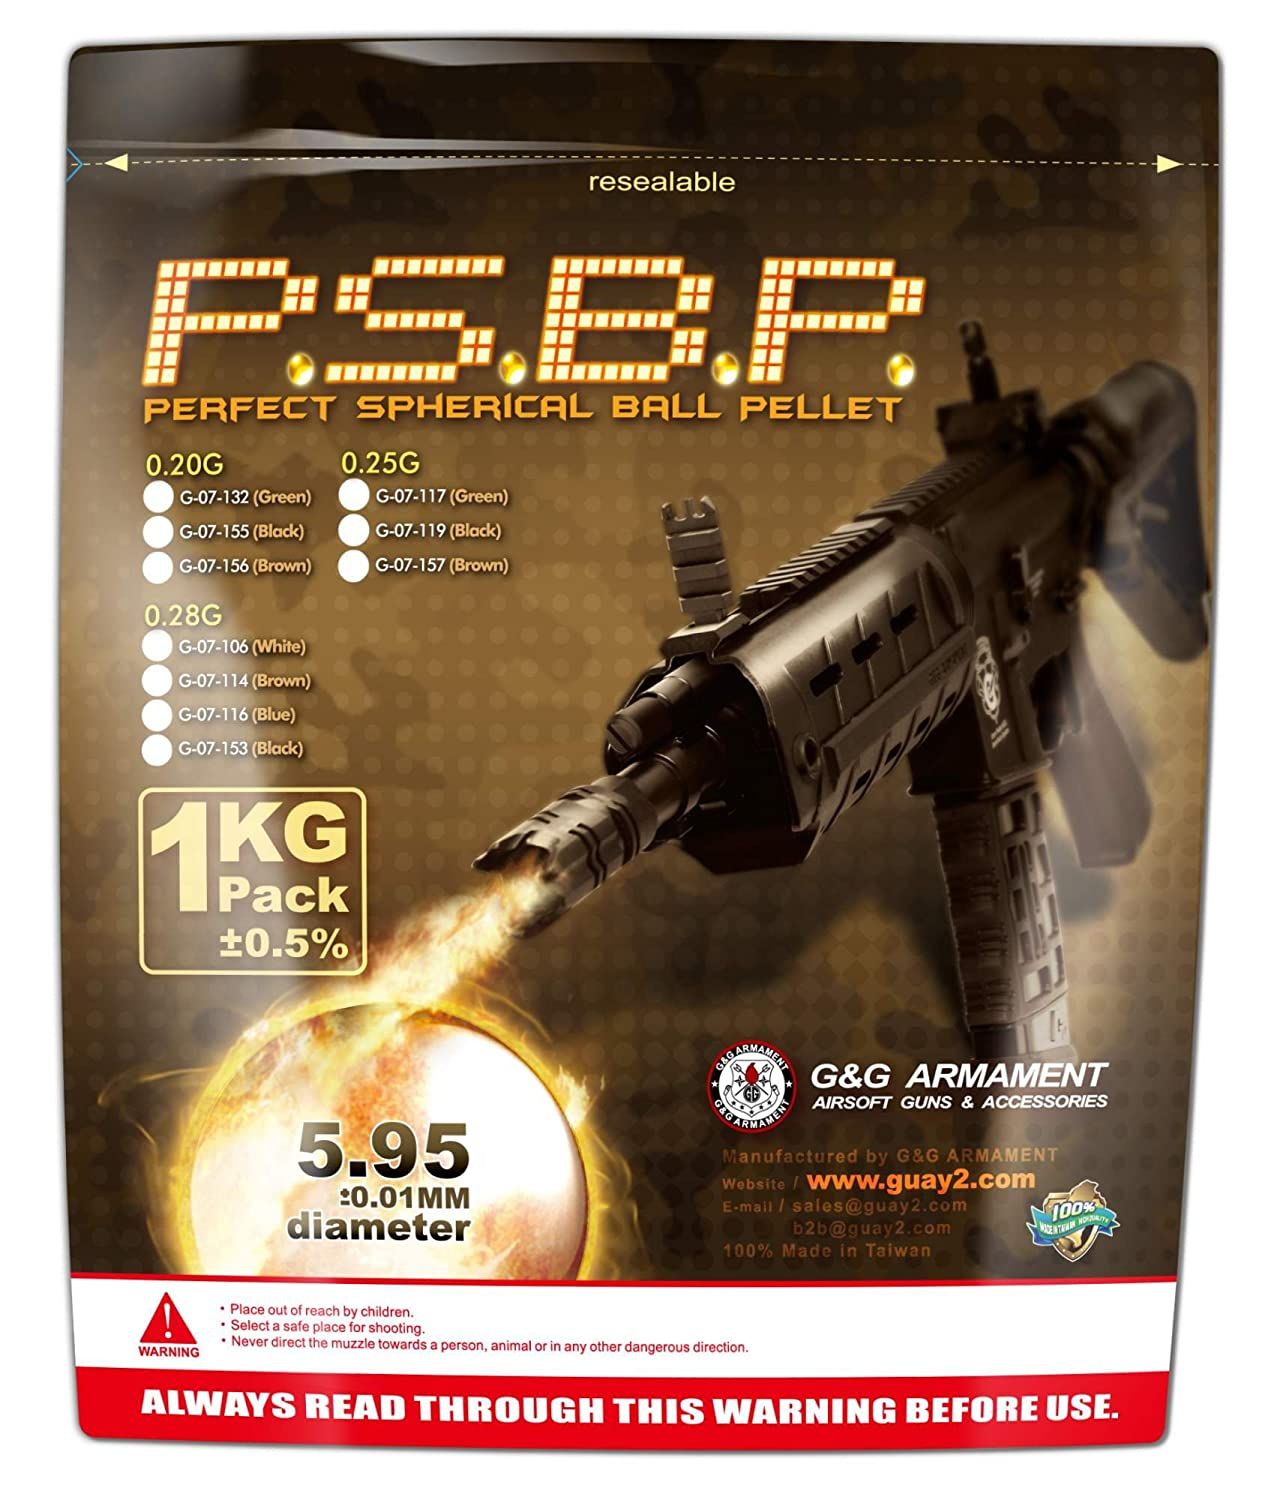 Billes G&G airsoft 0.28 Grs 1Kg